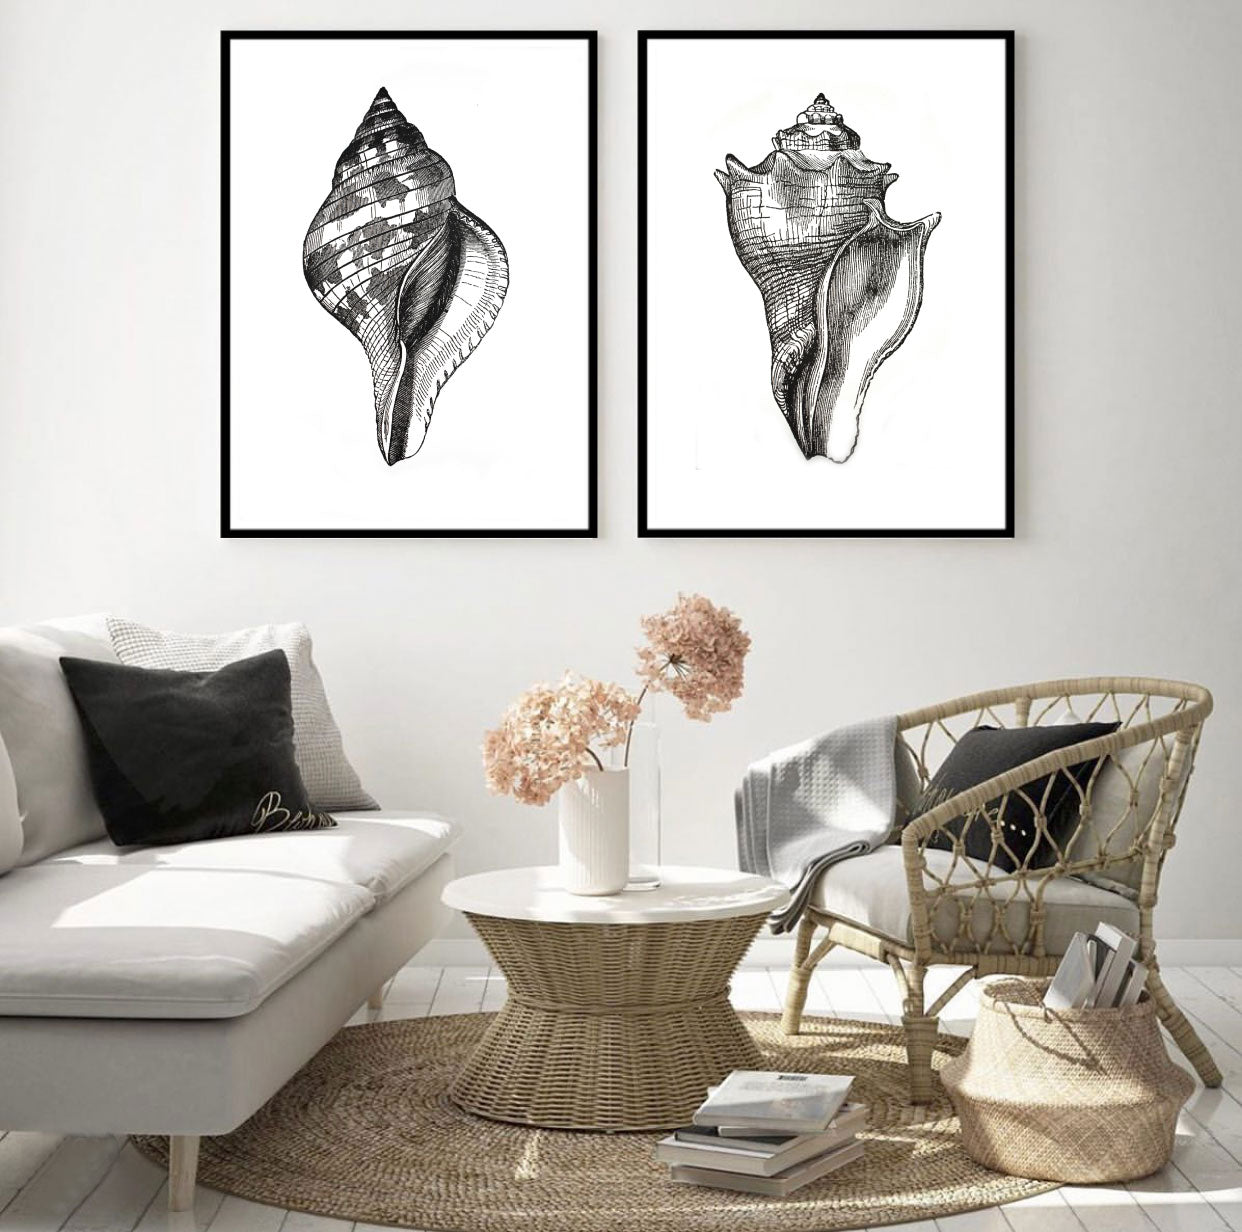 Vintage Shell Illustration Set of 2